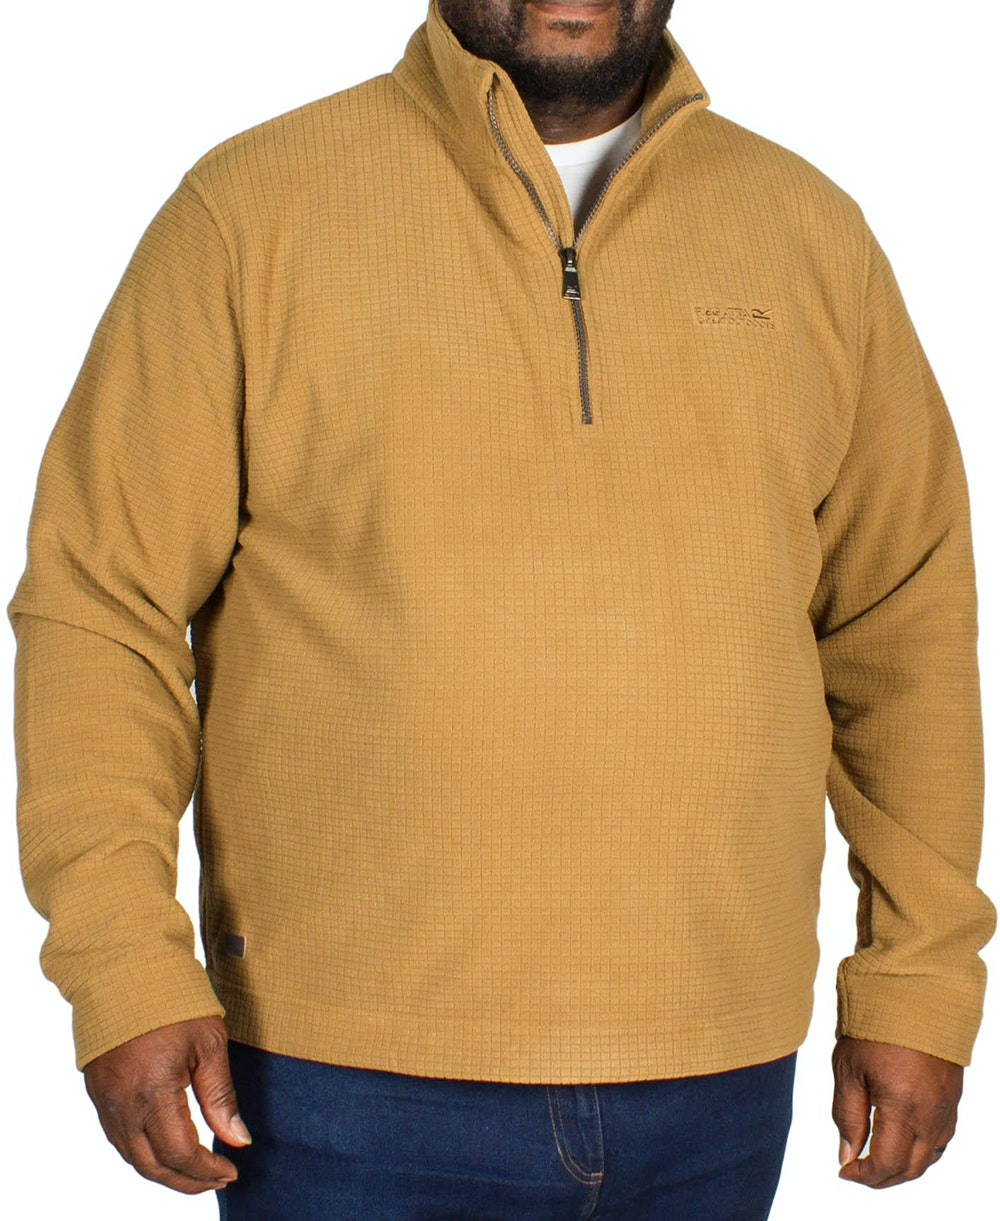 Regatta Elgon III Half Zip Fleece - Camel